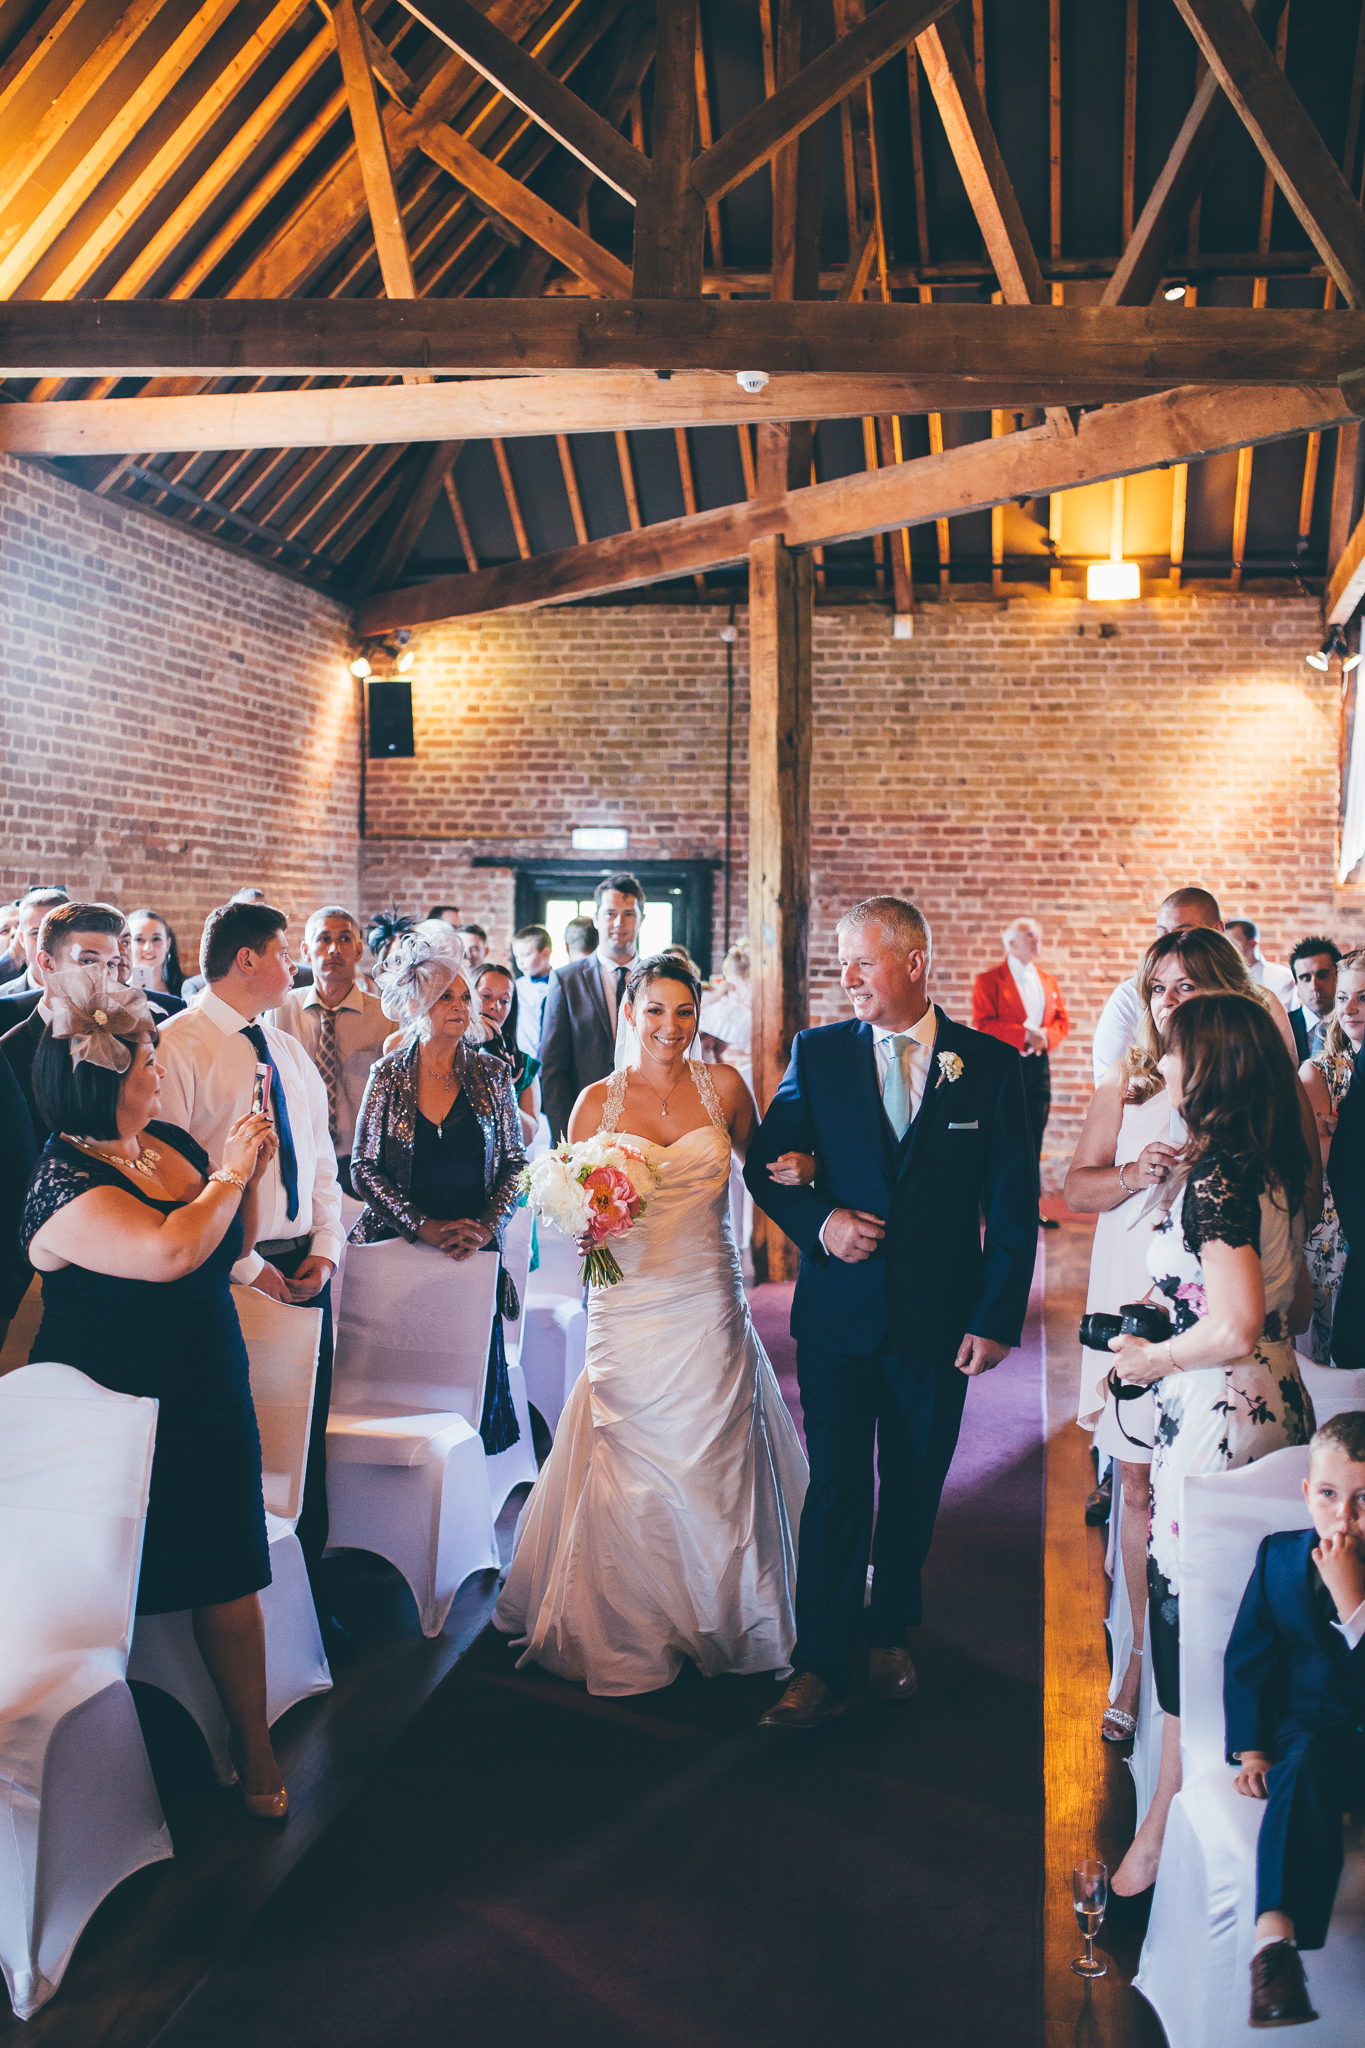 Joanna Nicole Photography Creative artistic wedding photography kent cooling castle barns vintage documentary (27 of 106).jpg